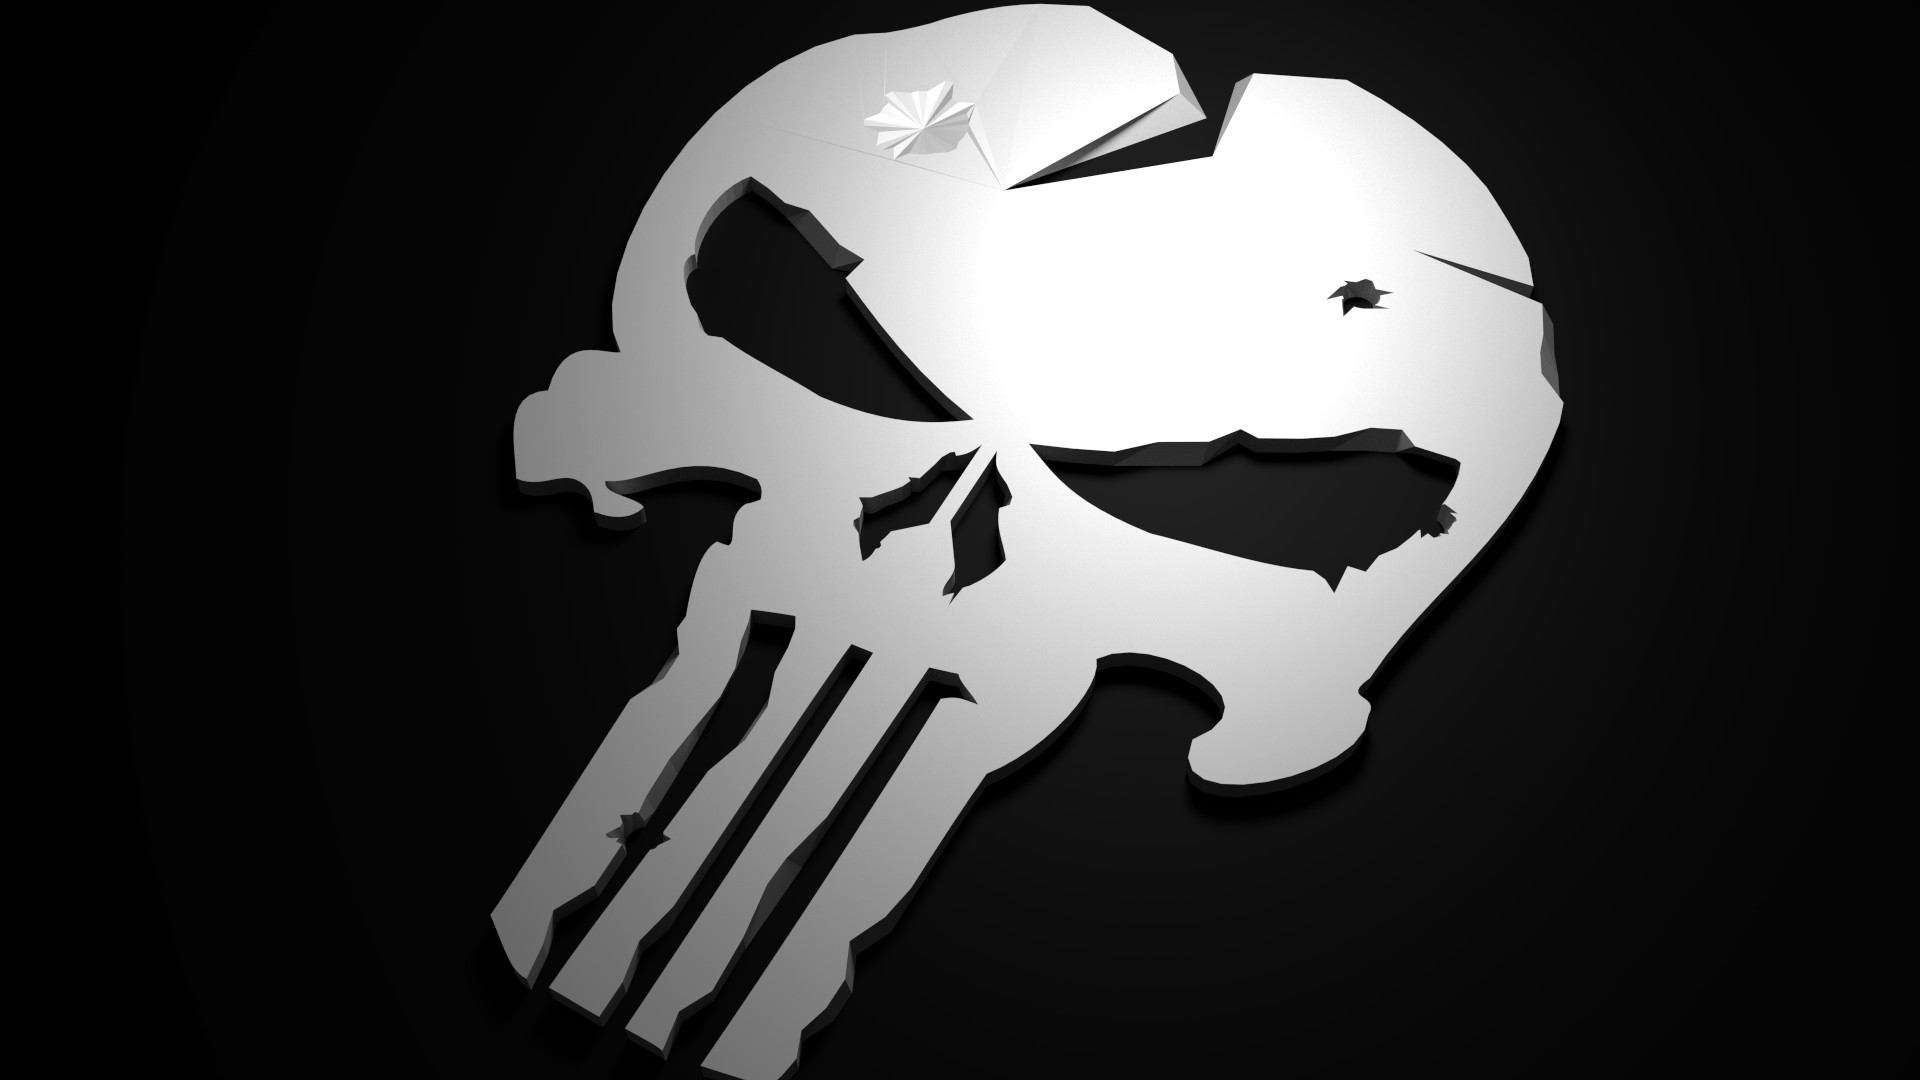 Low Poly Punisher (1920 x 1080) HD Wallpaper From Gallsource.com